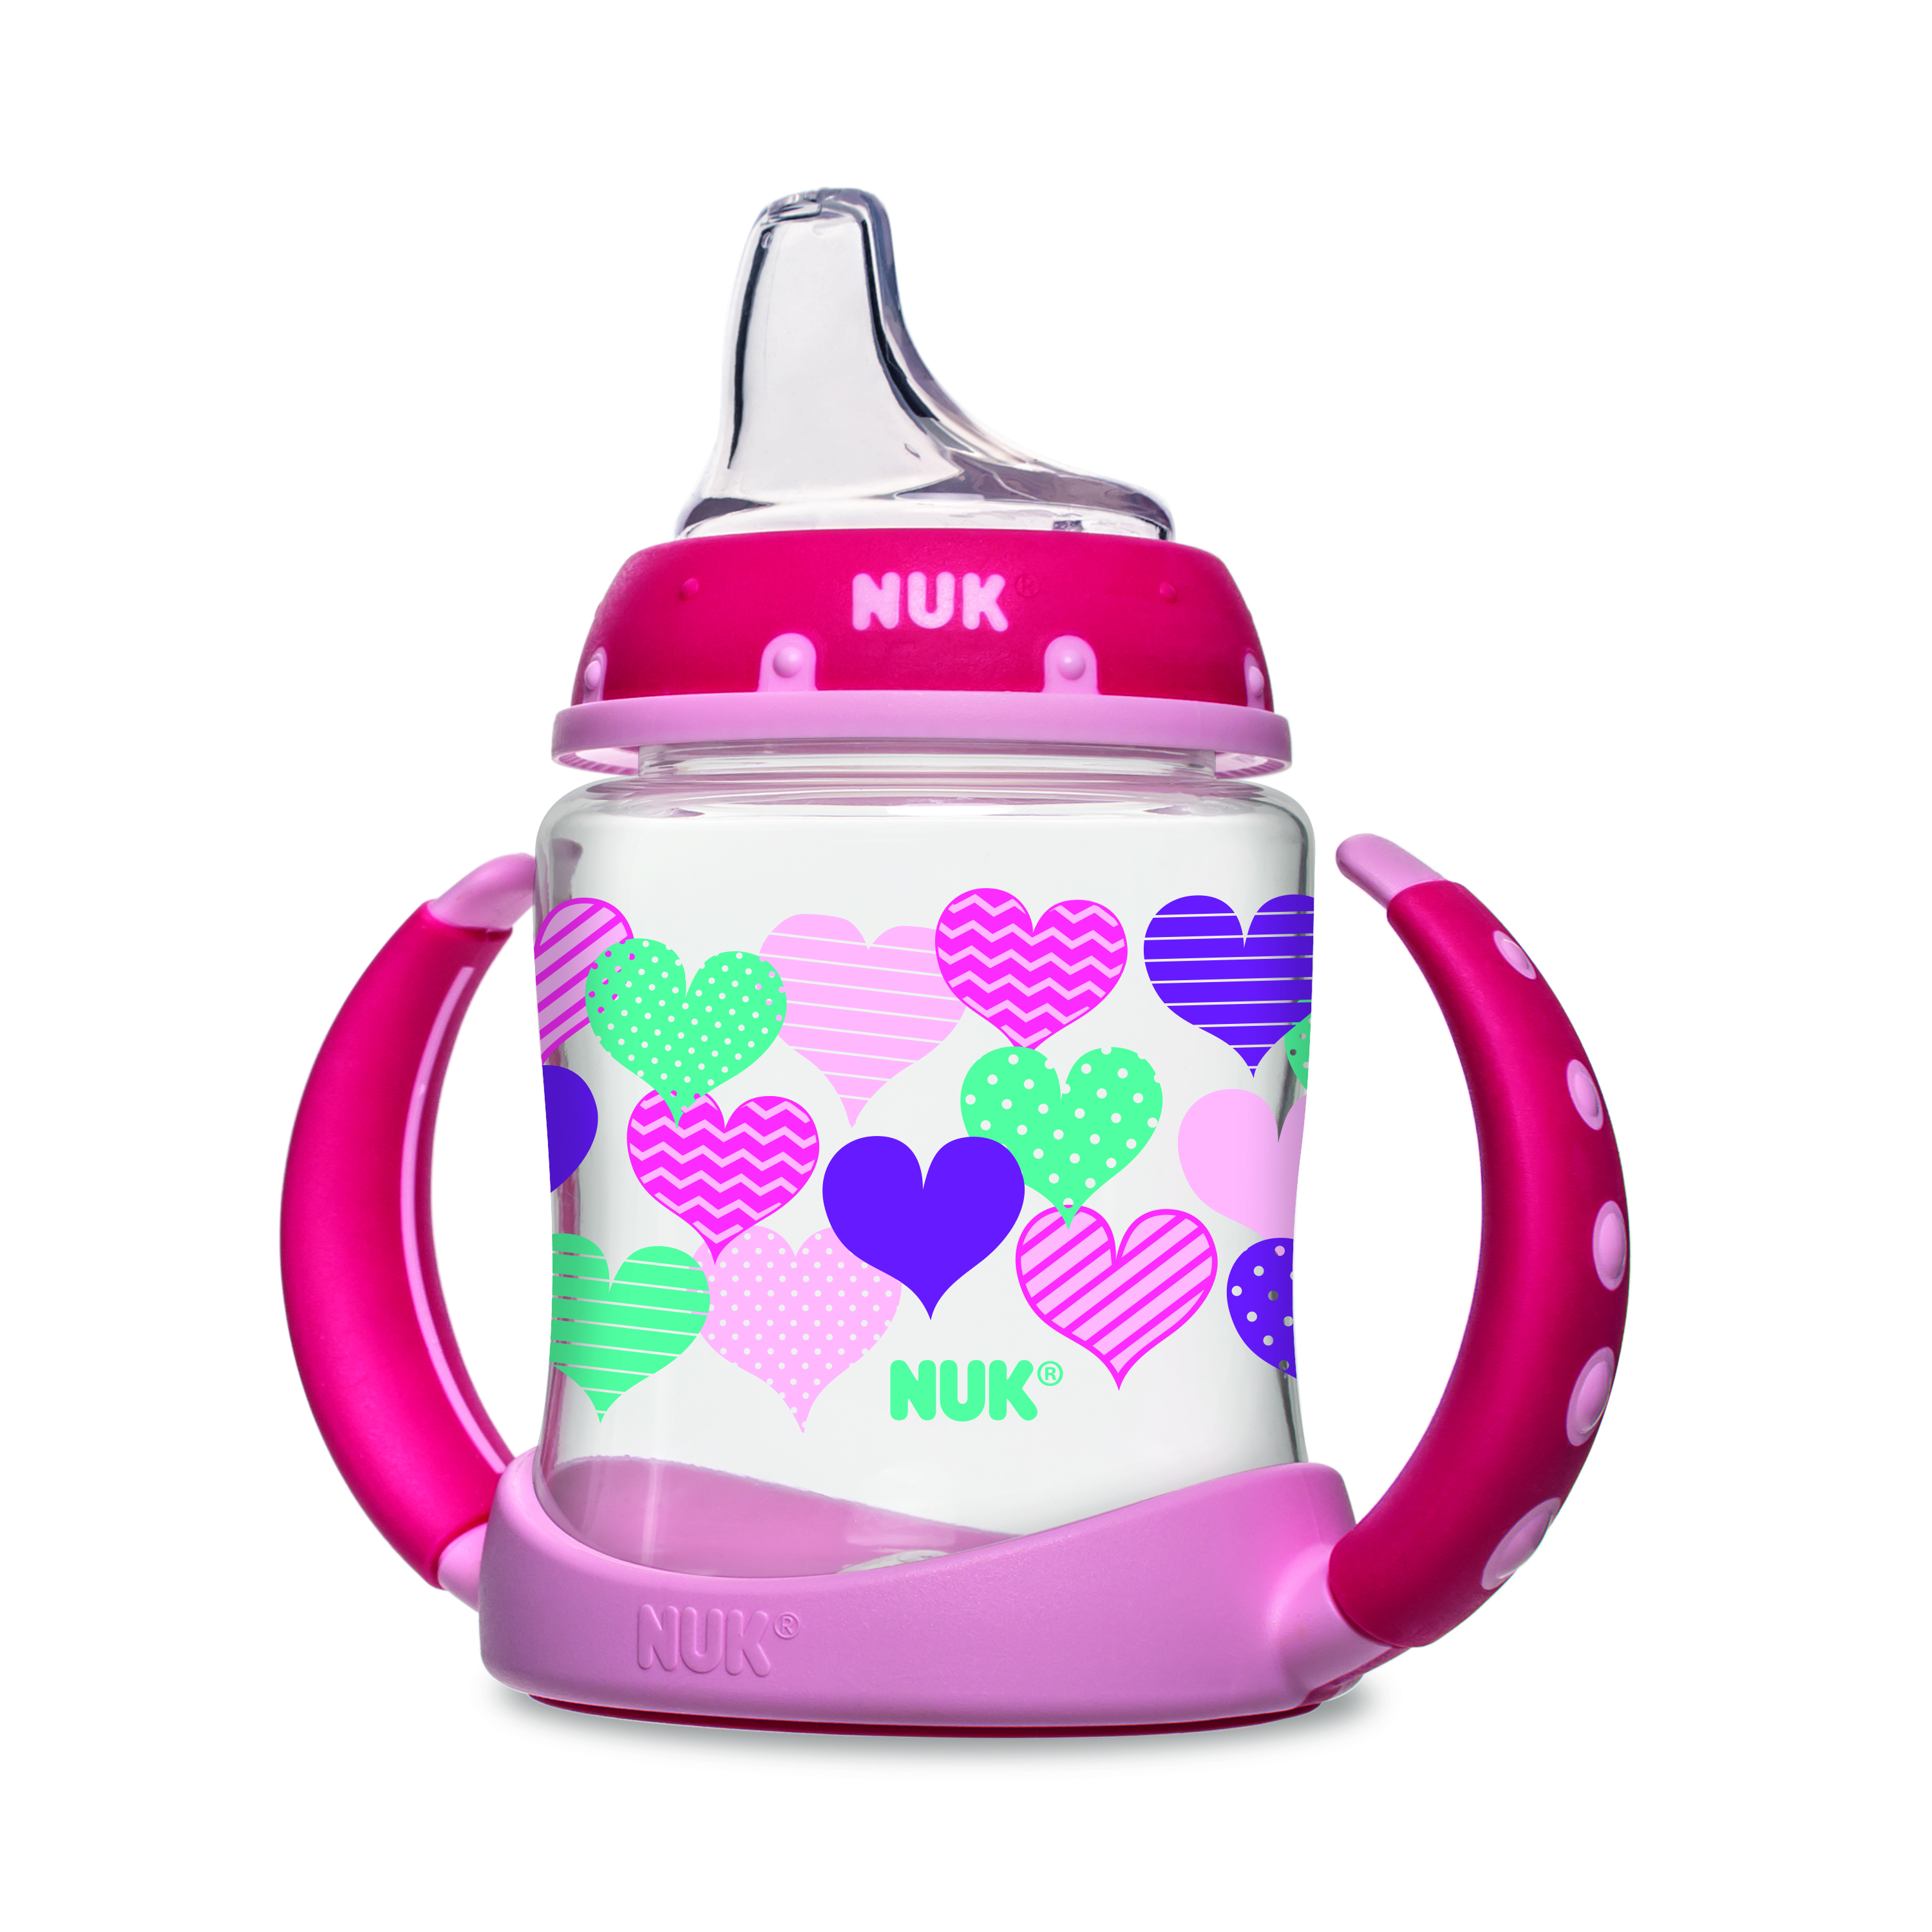 Nuk Learner Cup 6m+, 1.0 CT by Nuk